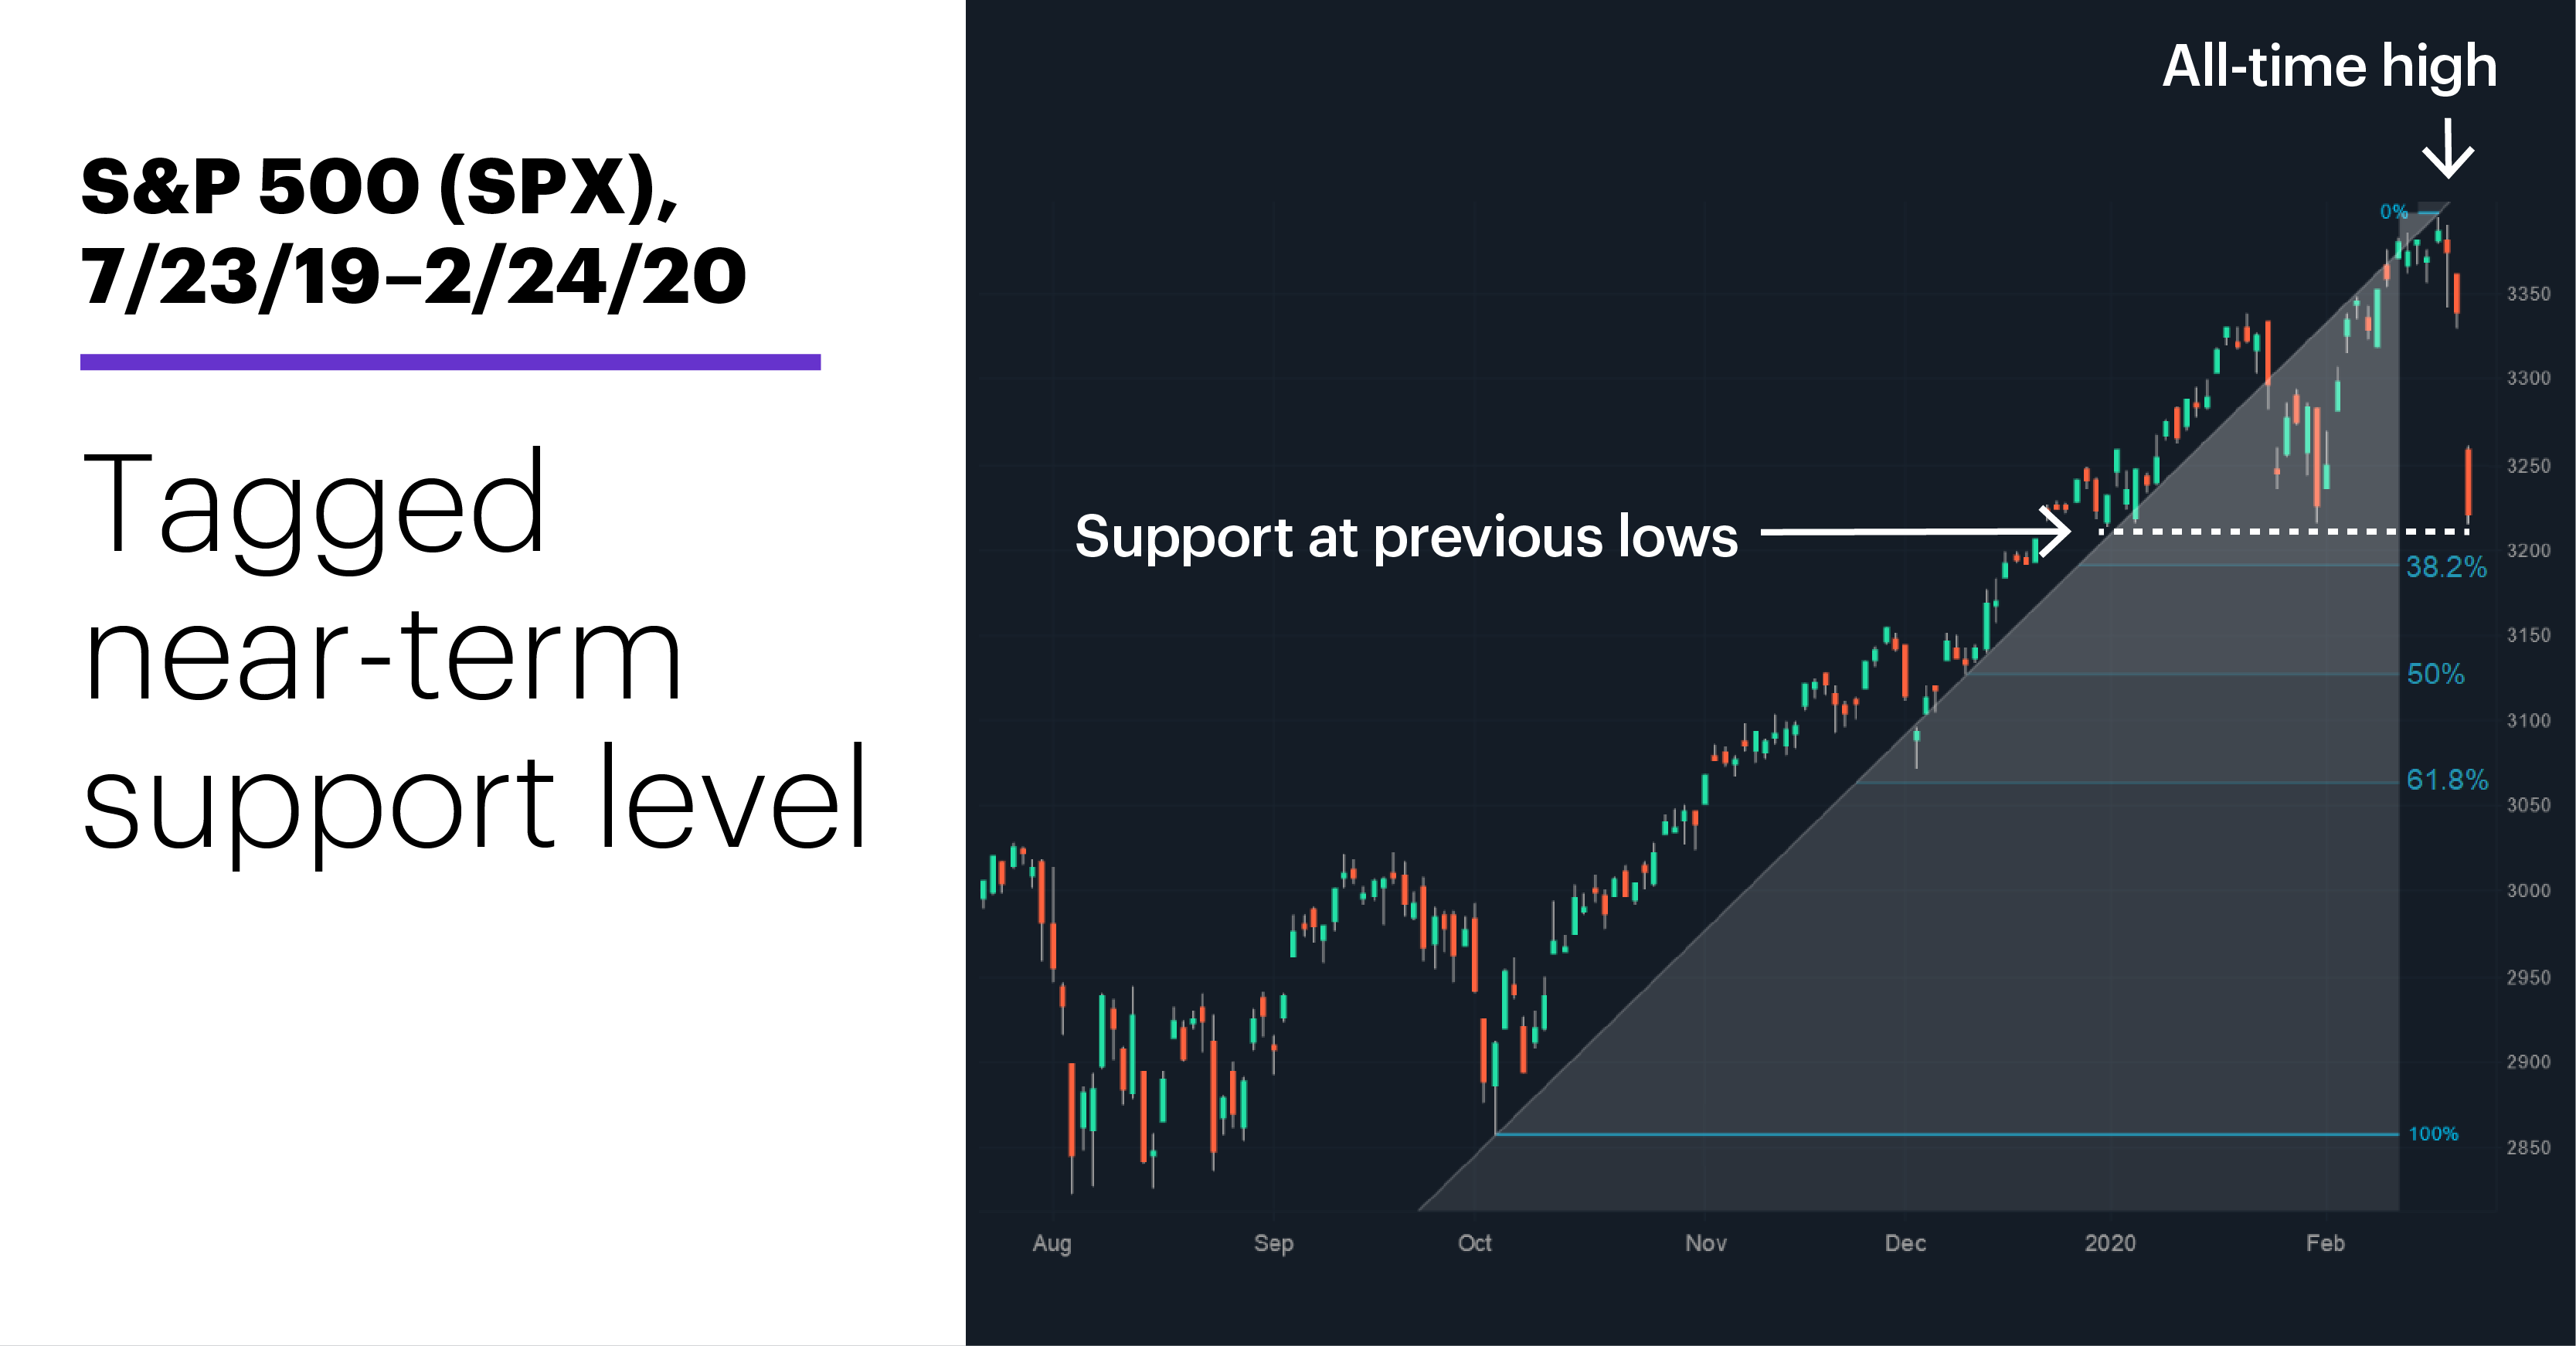 Chart 2: S&P 500 (SPX), 7/23/19–2/24/20. S&P 500 (SPX) price chart. Dropped close to near-term support.